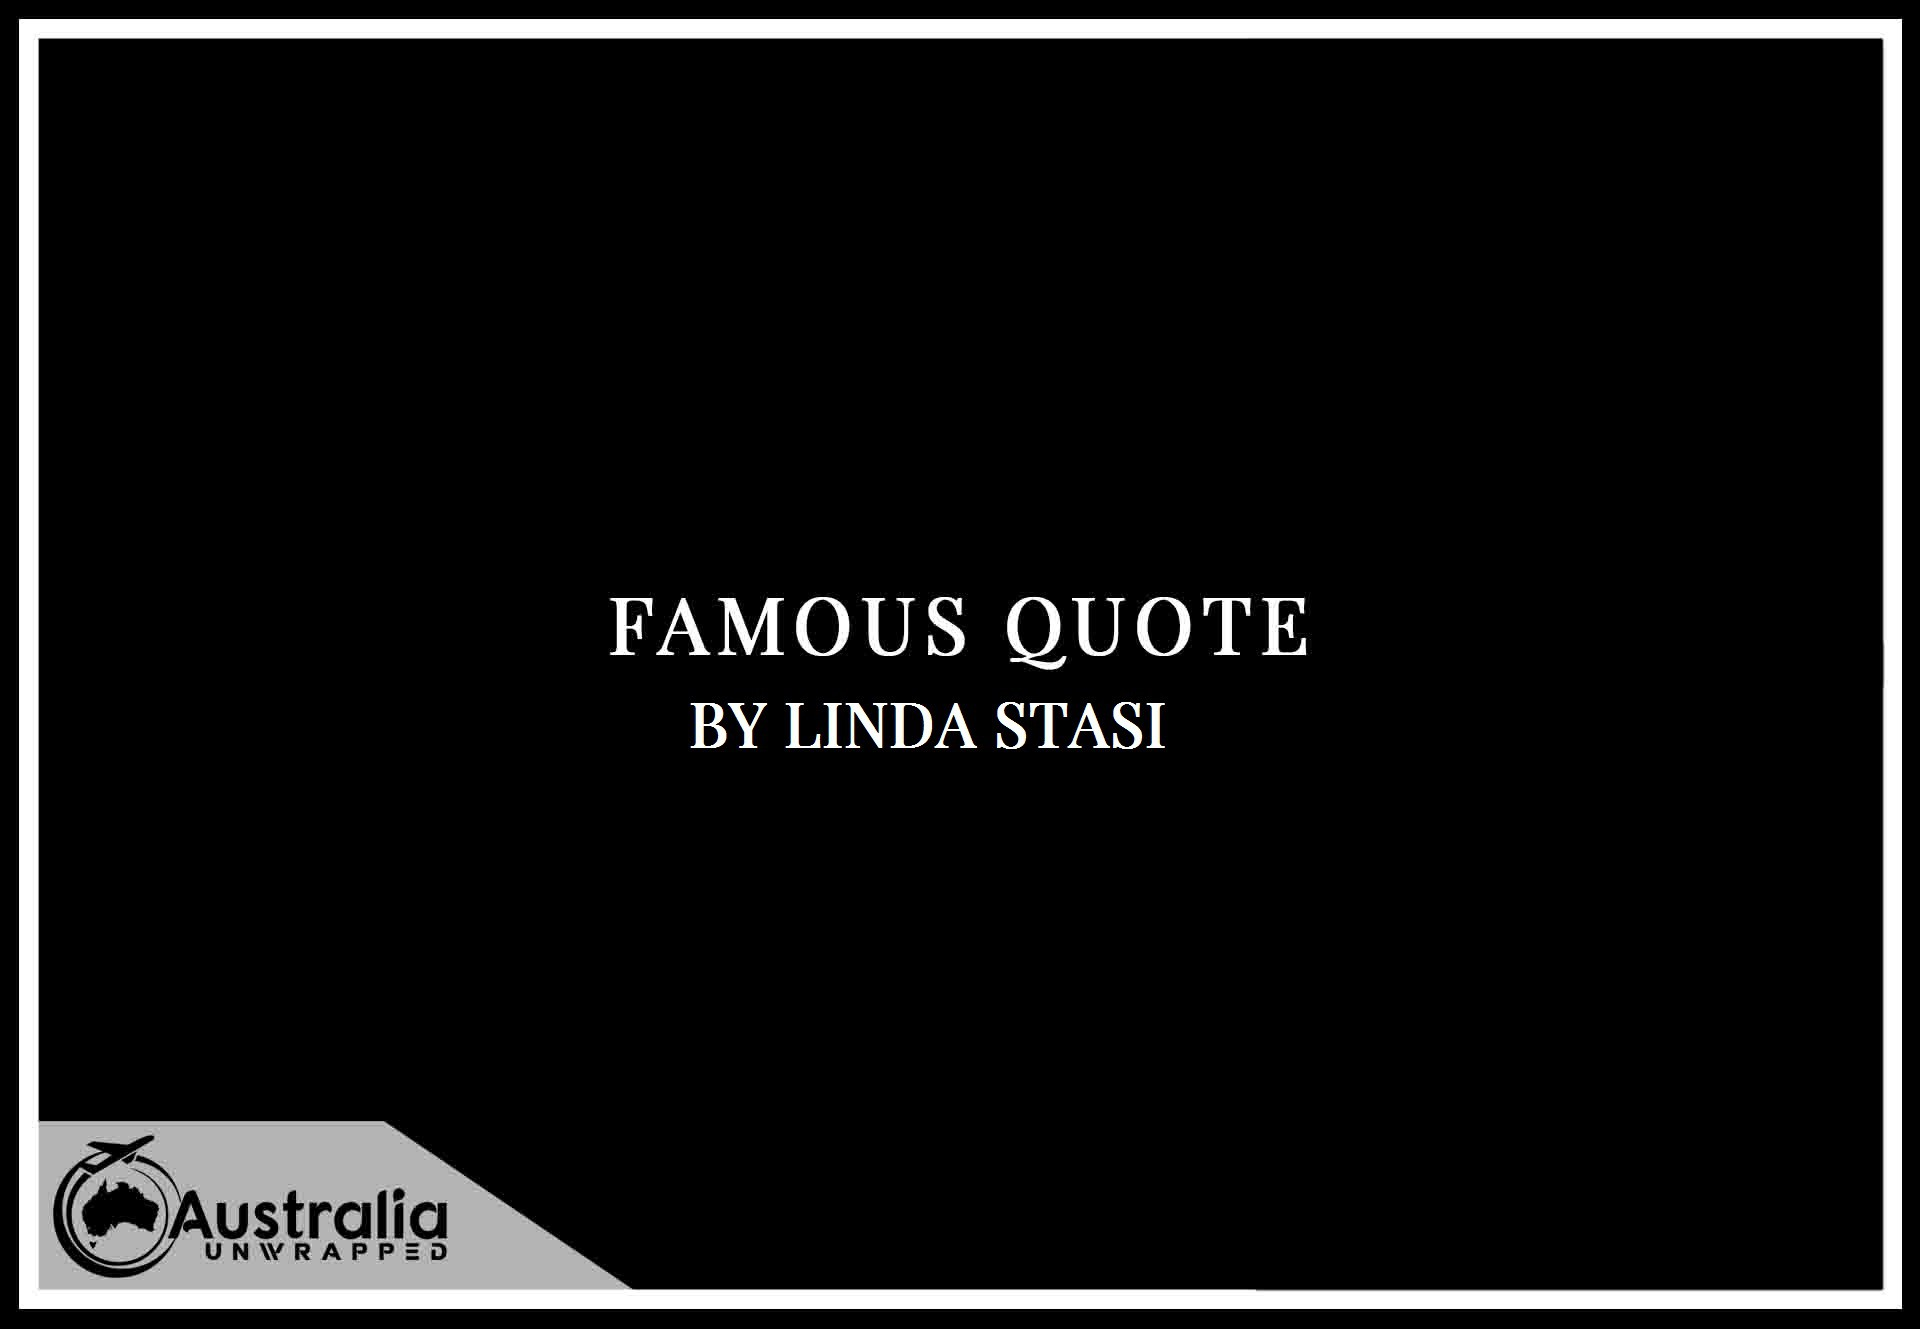 Linda Stasi's Top 1 Popular and Famous Quotes